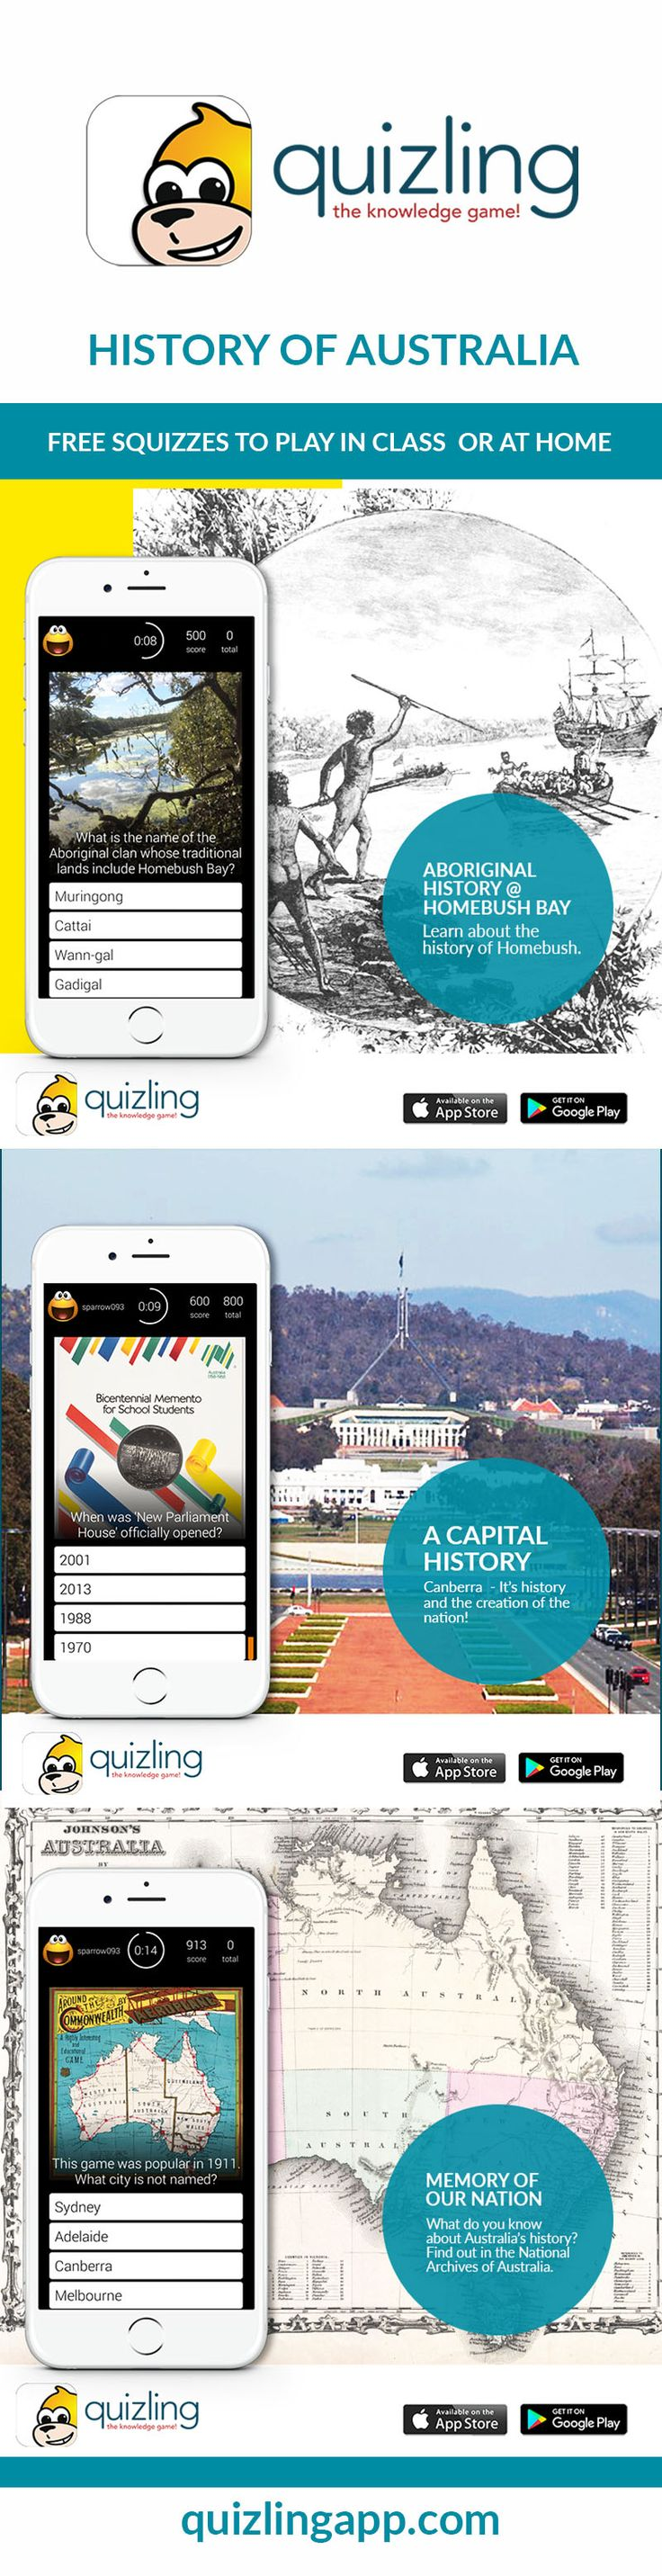 Australia History  free quiz resources for teachers and parents!